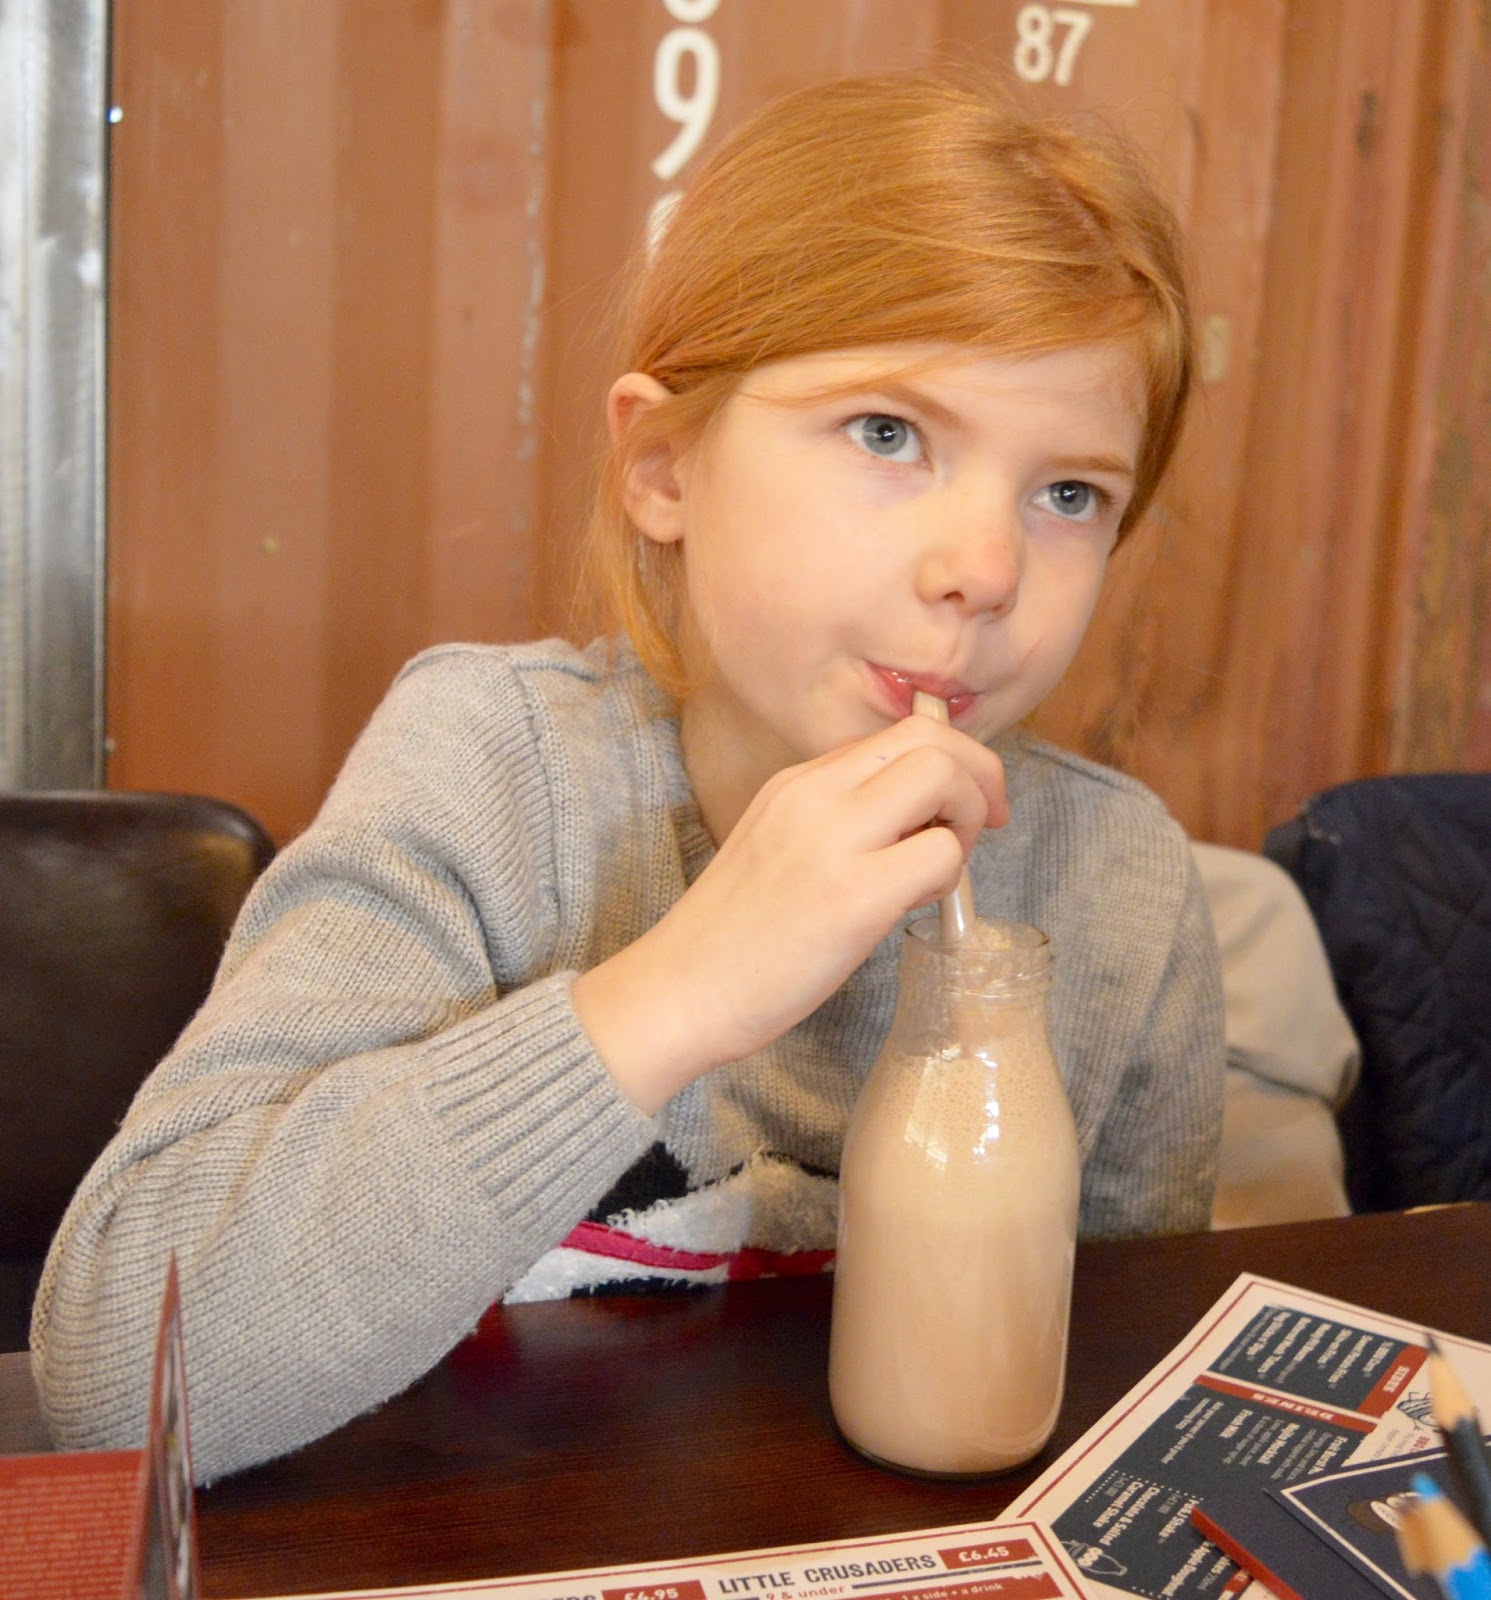 Red's True BBQ Newcastle | Menu Review (including Children's Menu) - kid's milkshake